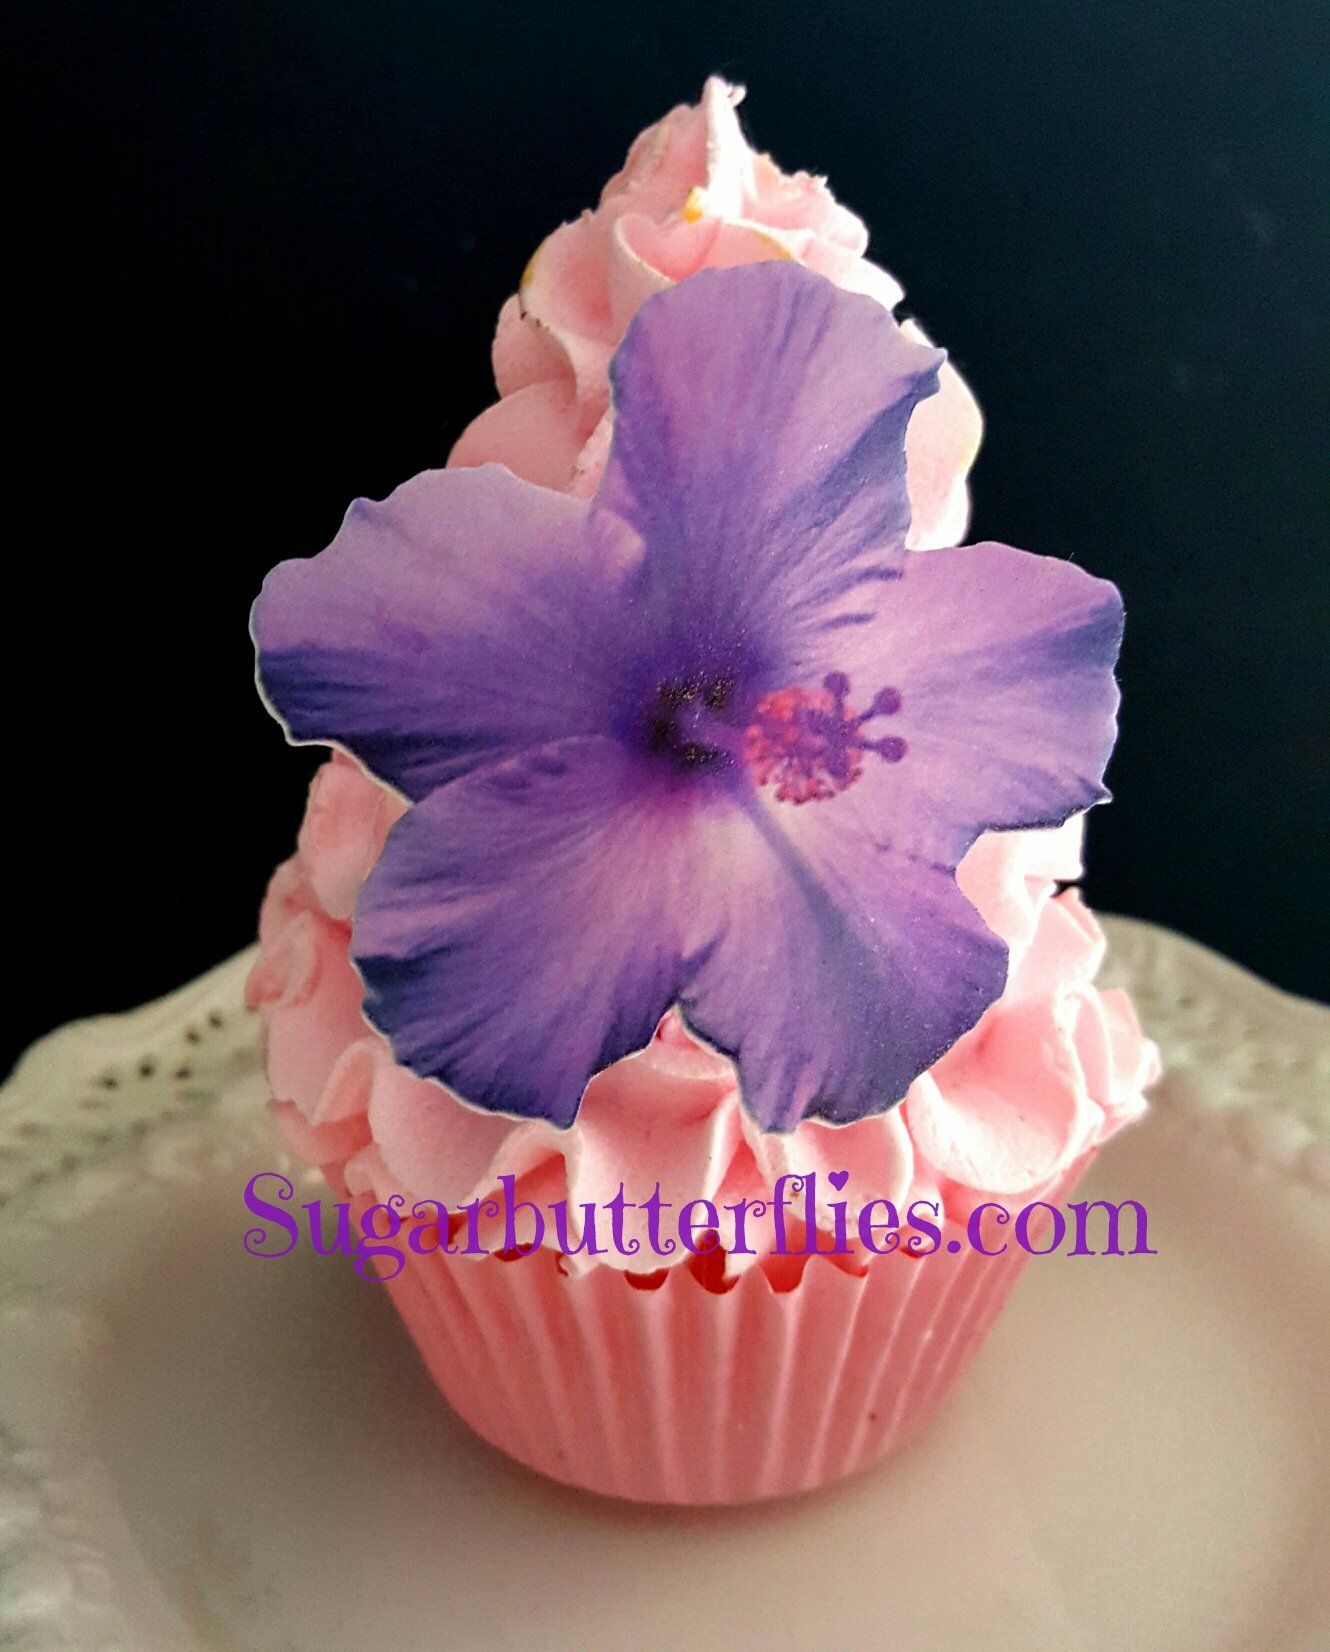 Edible Wafer Pink Hibiscus Flowers Cake Decorations Cupcake Toppers